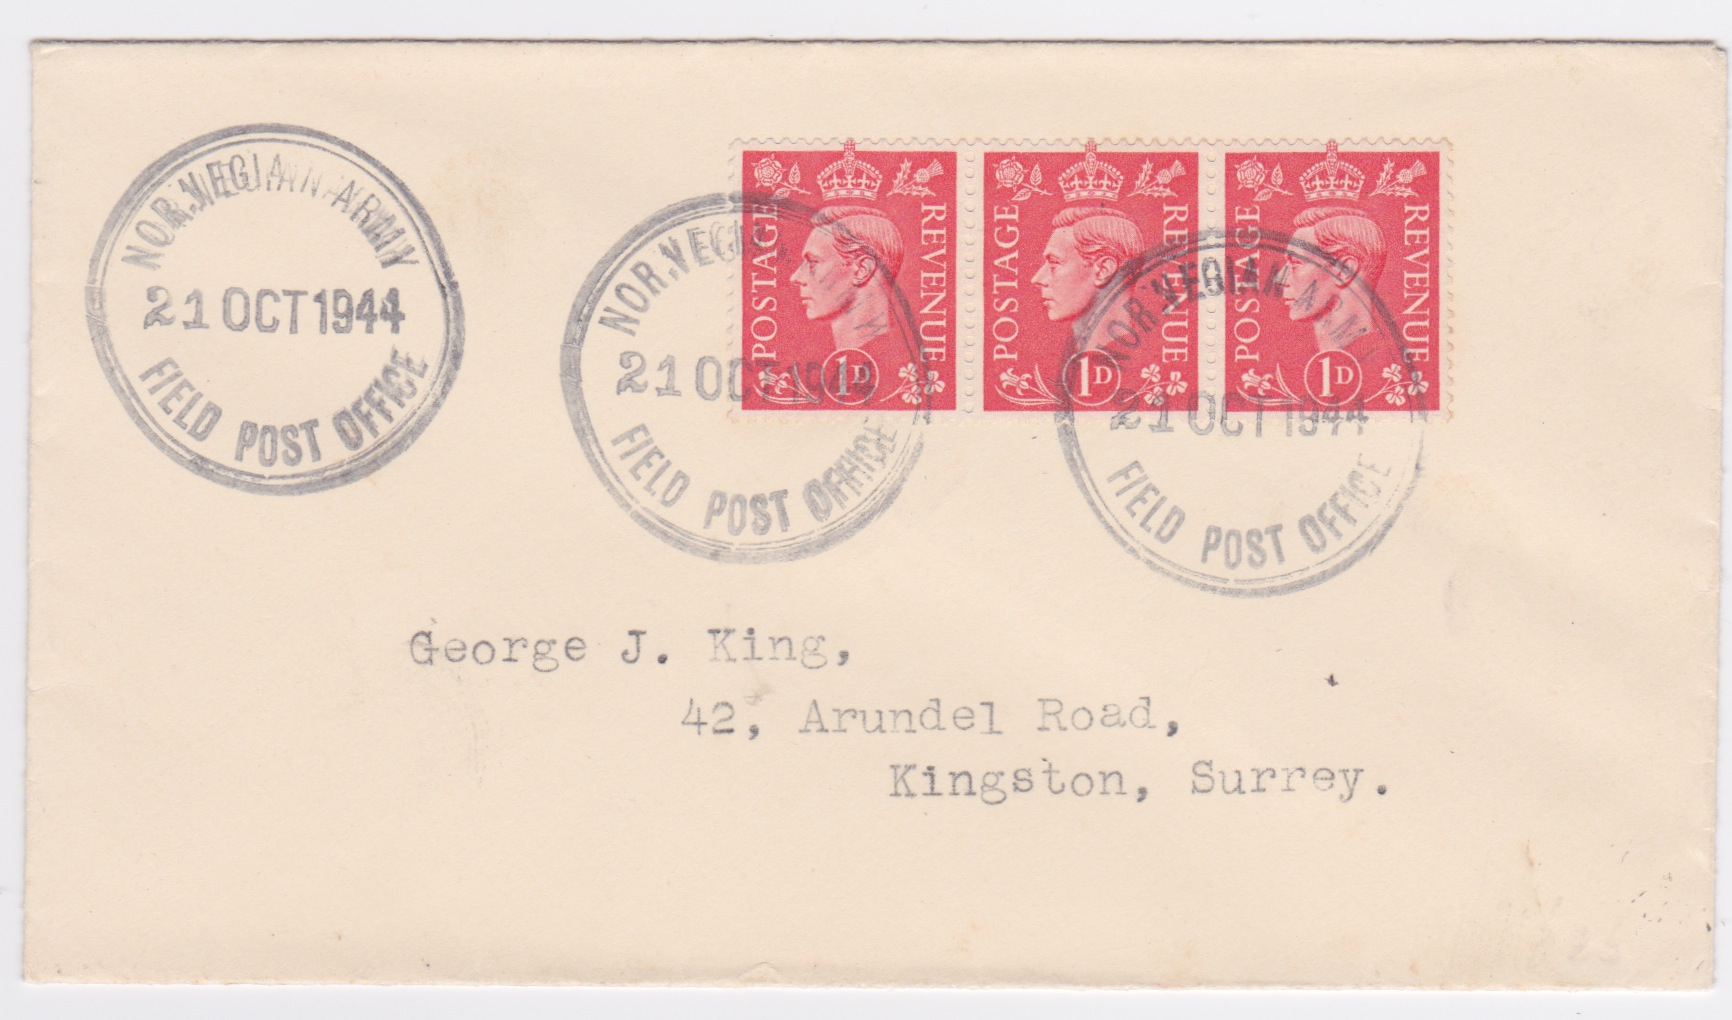 1944 King George VI 3x1d NORWEGIAN ARMY FIELD POST OFFICE cover to GB